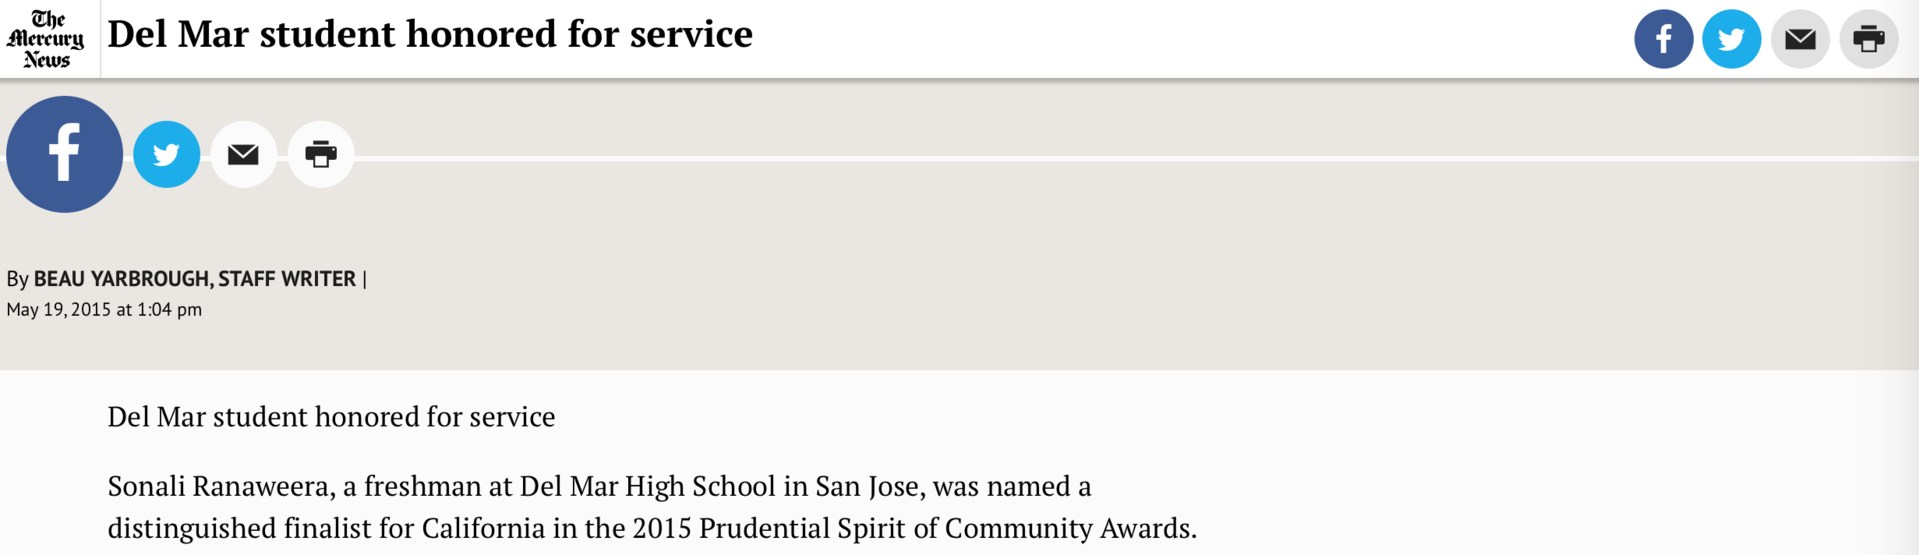 Image of article on Student, Sonali Ranaweera, honored for her outstanding community service with the 2015 Prudential Spirit of Community Awards, as featured in the San Jose Mercury News